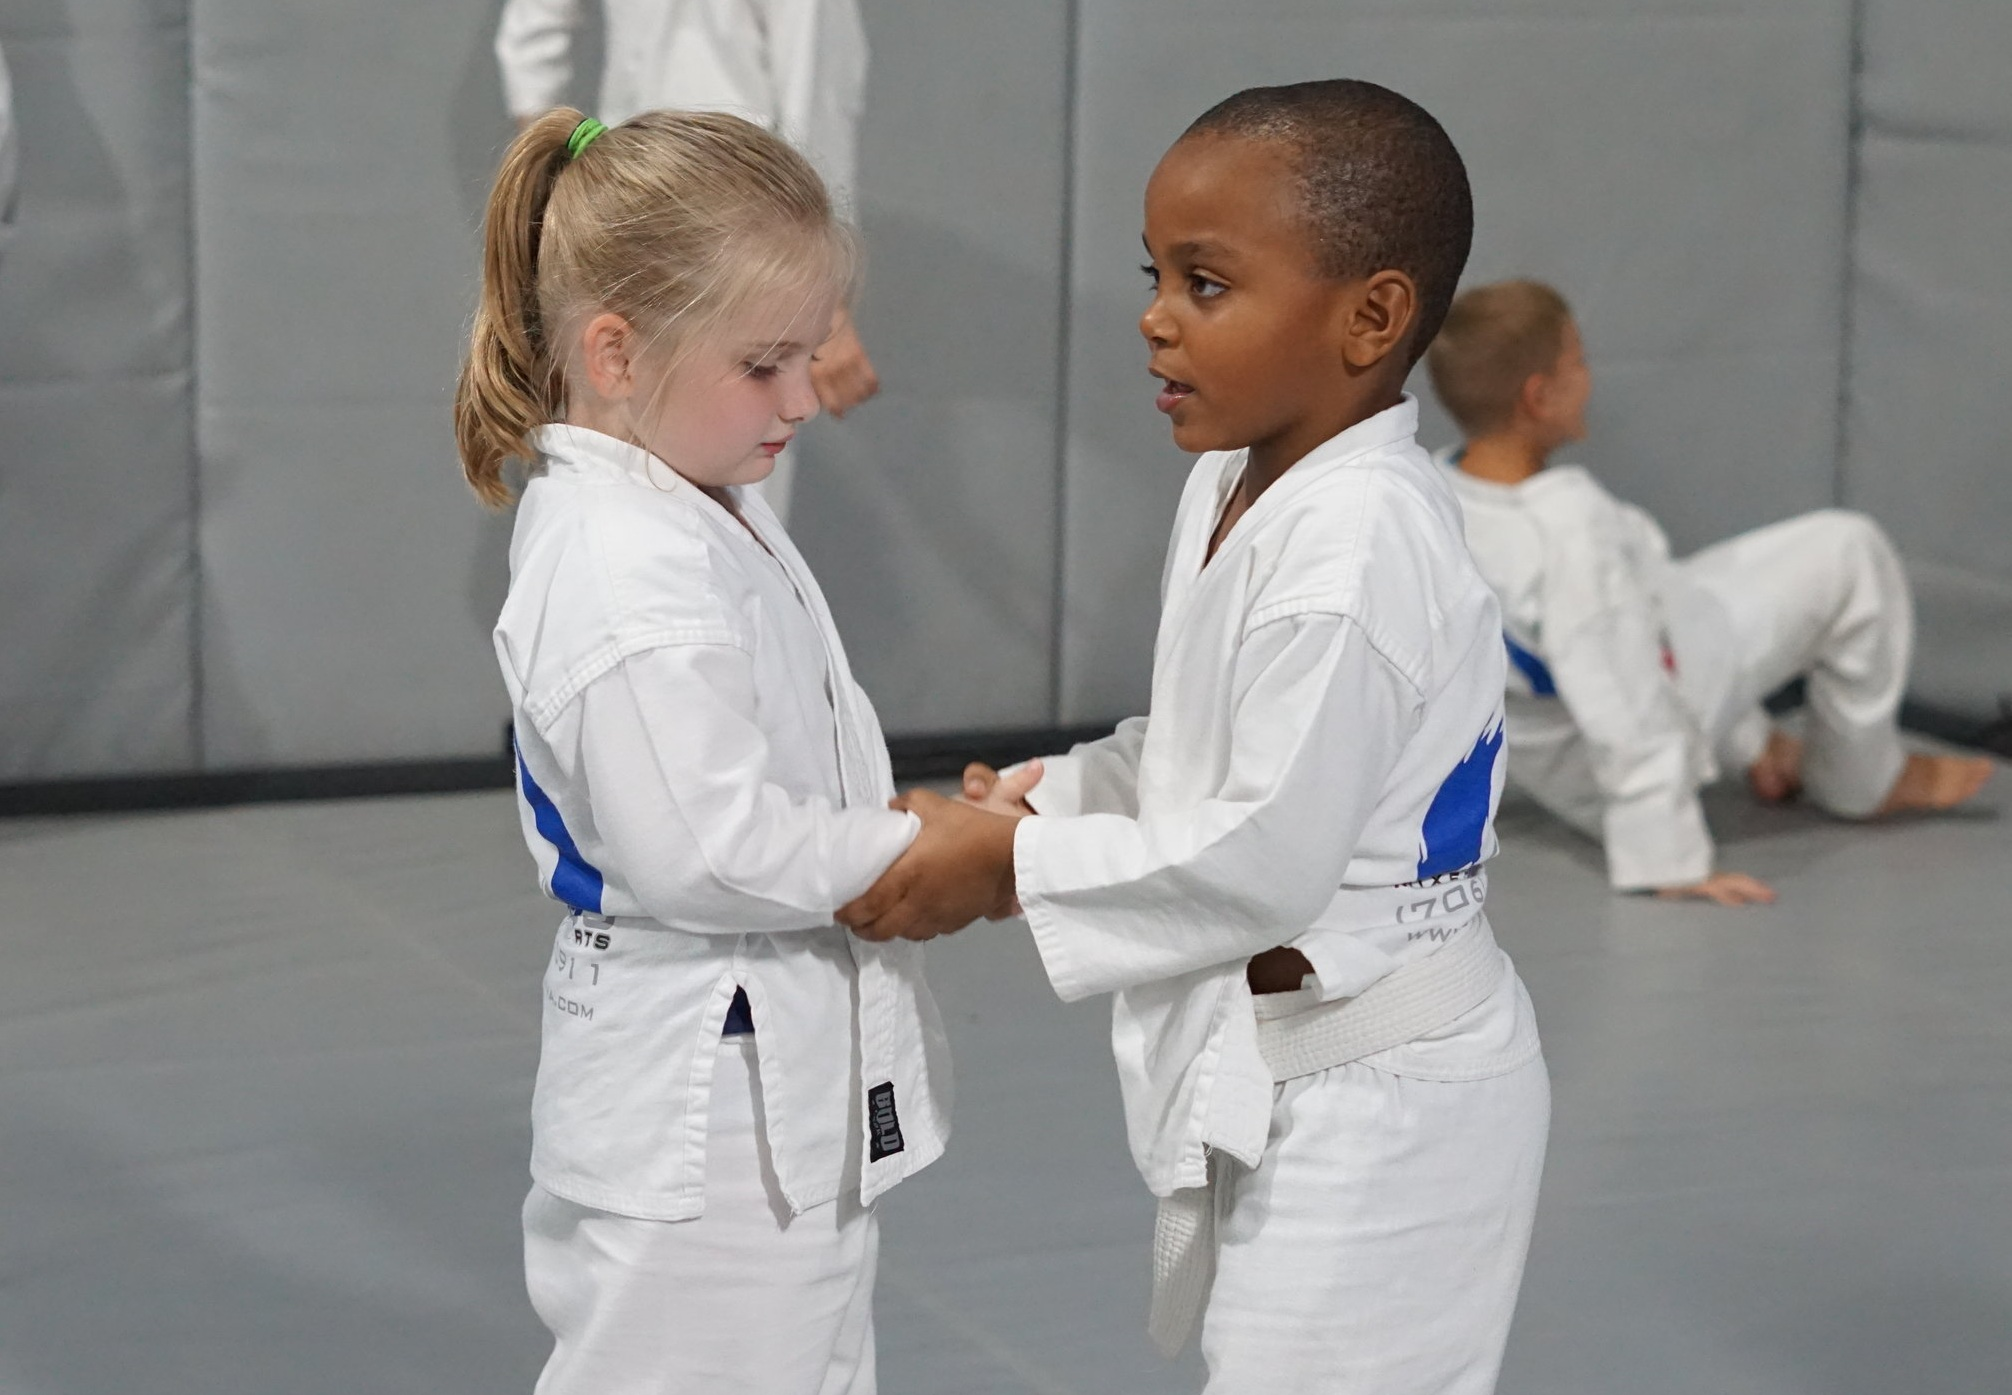 KIDS MARTIAL ARTS CLASSES - Our Kids Martial Arts Classes in Grovetown, Georgia will give your children the CONFIDENCE, to tackle life with a WINNING Attitude!